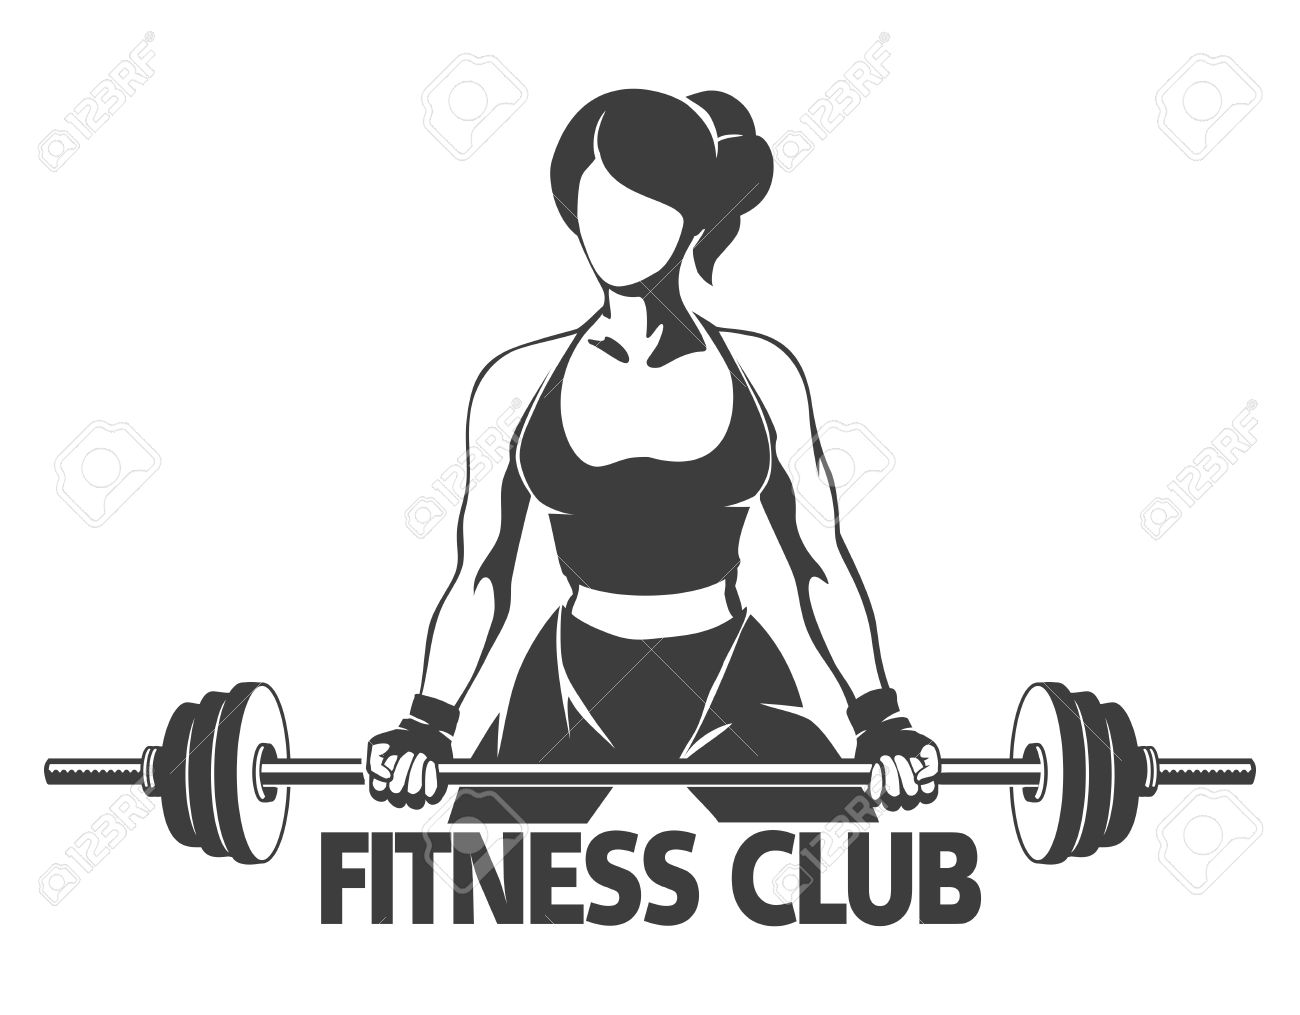 Fitness or Gym center emblem  Athletic woman silhouette with